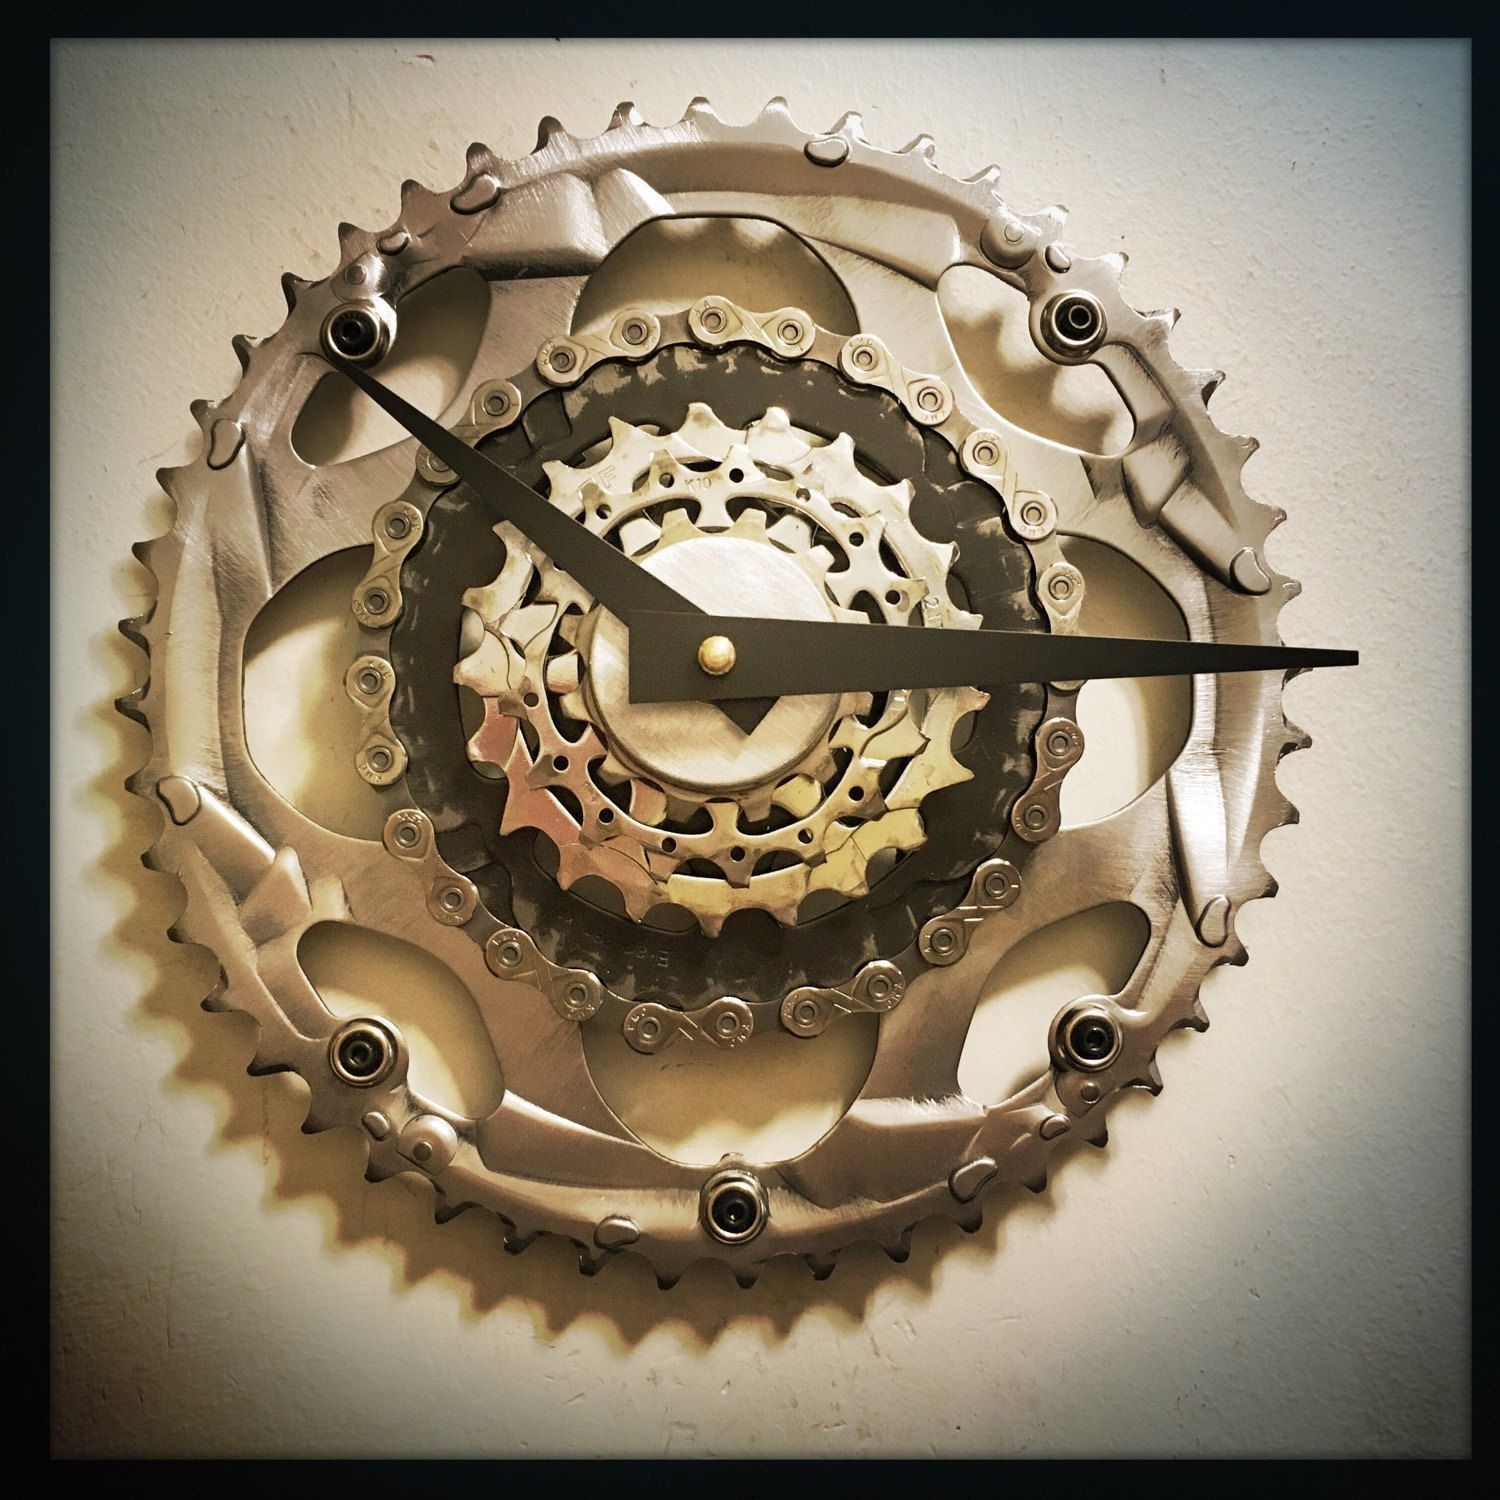 Steampunk wall clock bicycle gift steampunk decor mid century steampunk wall clock bicycle gift steampunk decor mid century modern wall clock industrial decor gift for cyclist unique wall clock amipublicfo Images